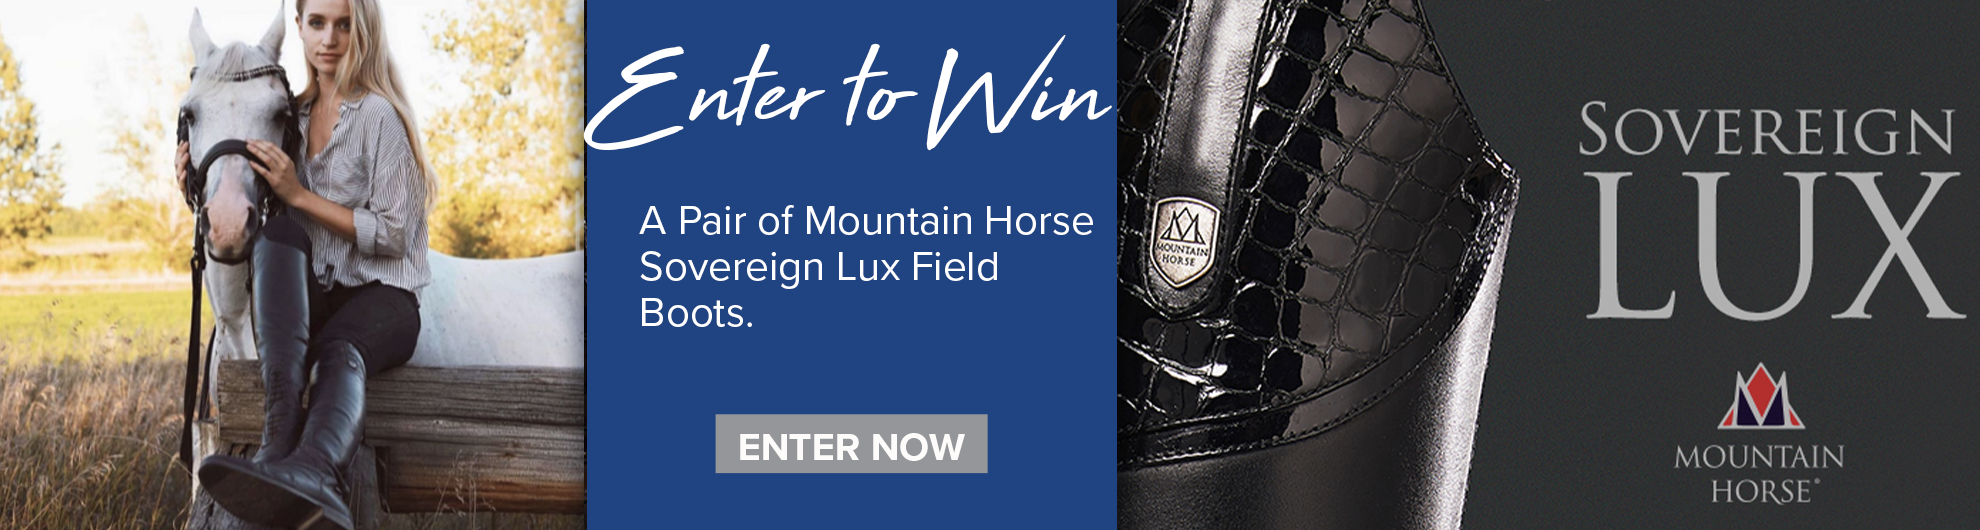 Mountain Horse Sovereign LUX Field Boots